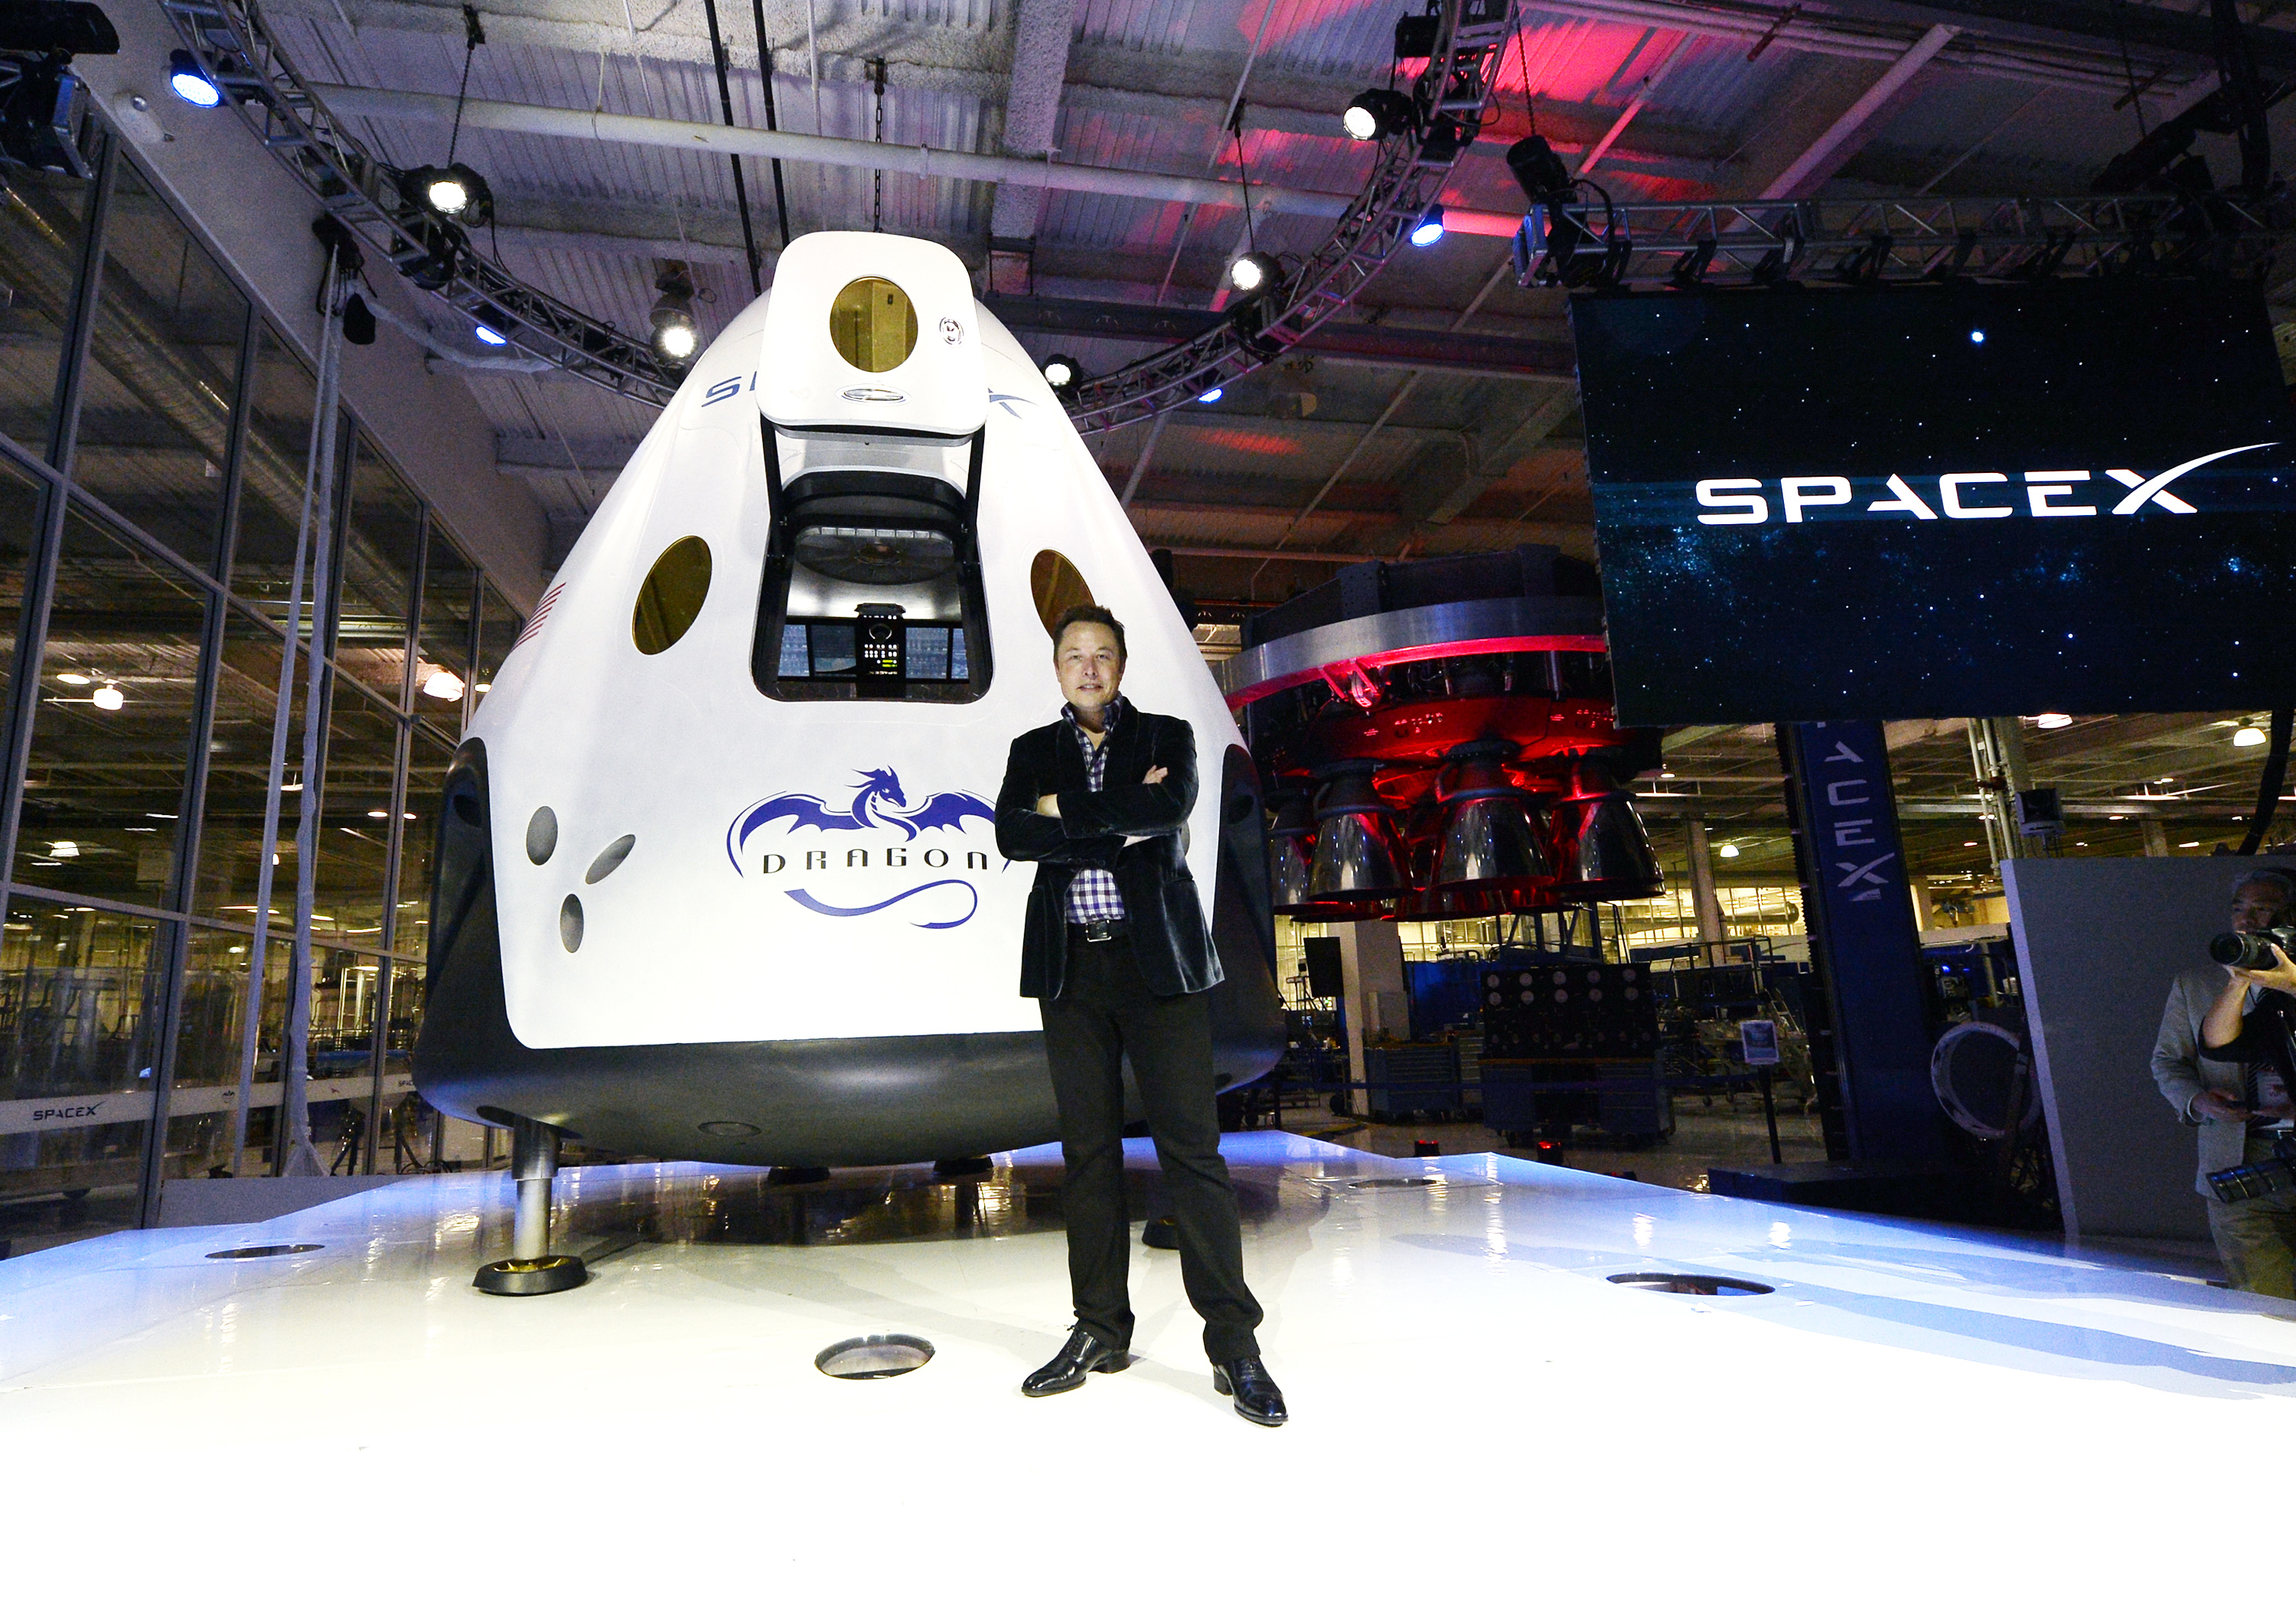 SpaceX CEO Elon Musk standing in front of the company's manned spacecraft, The Dragon V2.